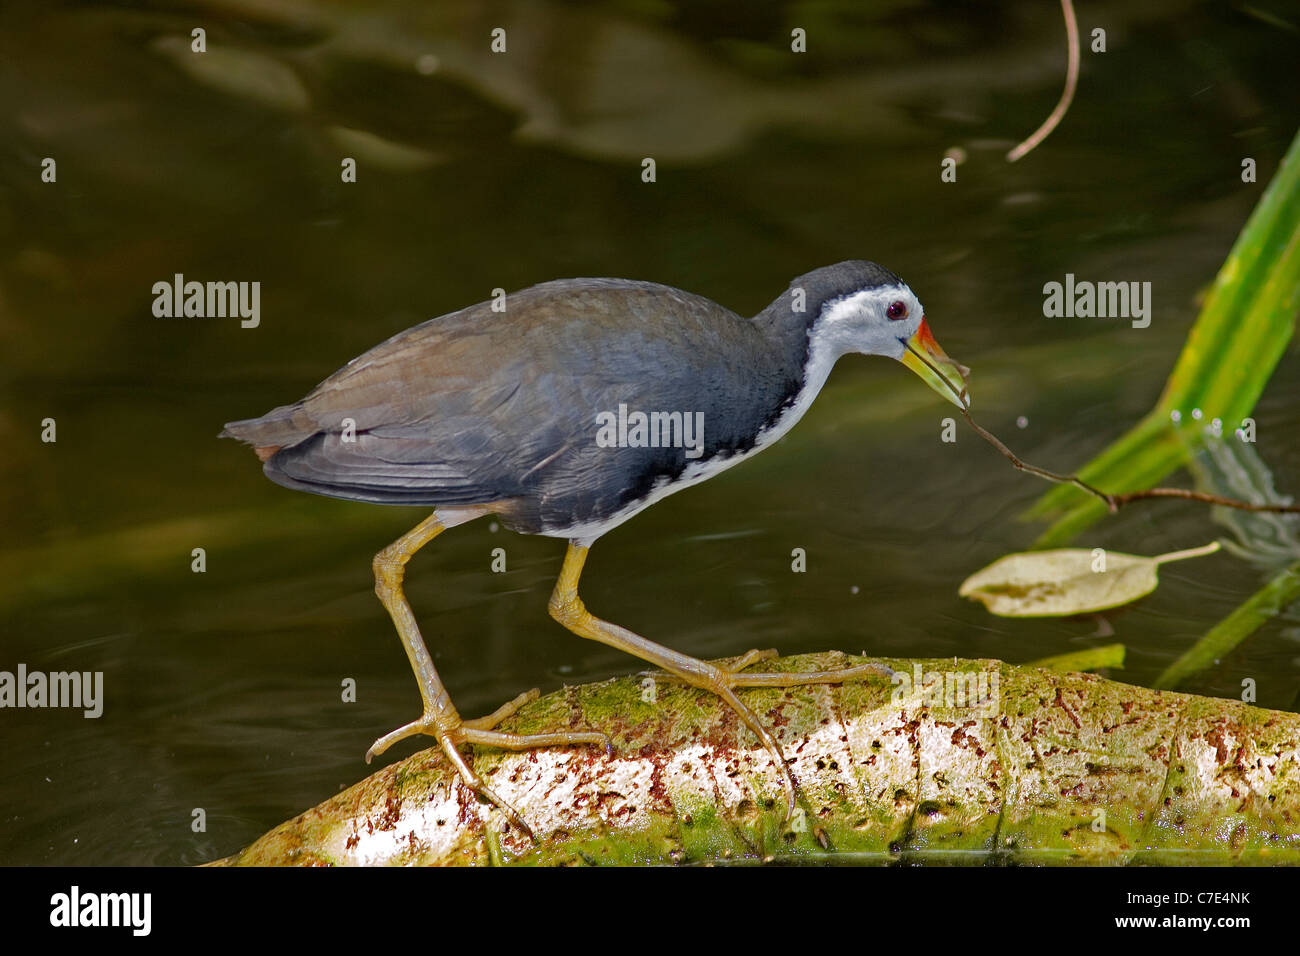 White breasted waterhen amaurornis phoenicurus Sri Lanka - Stock Image